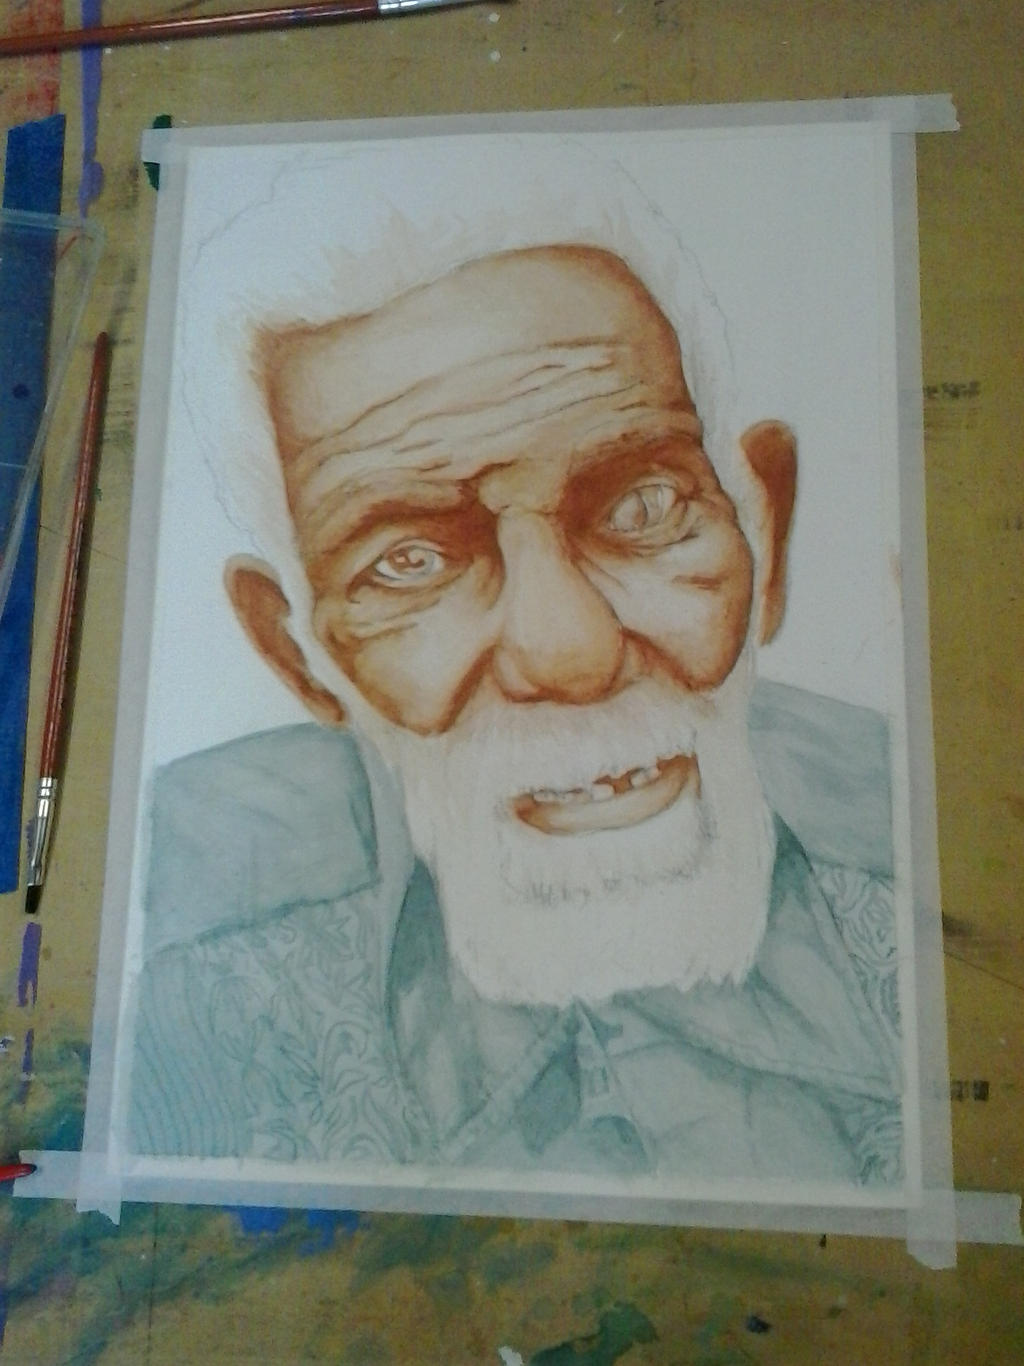 Old Man - In process